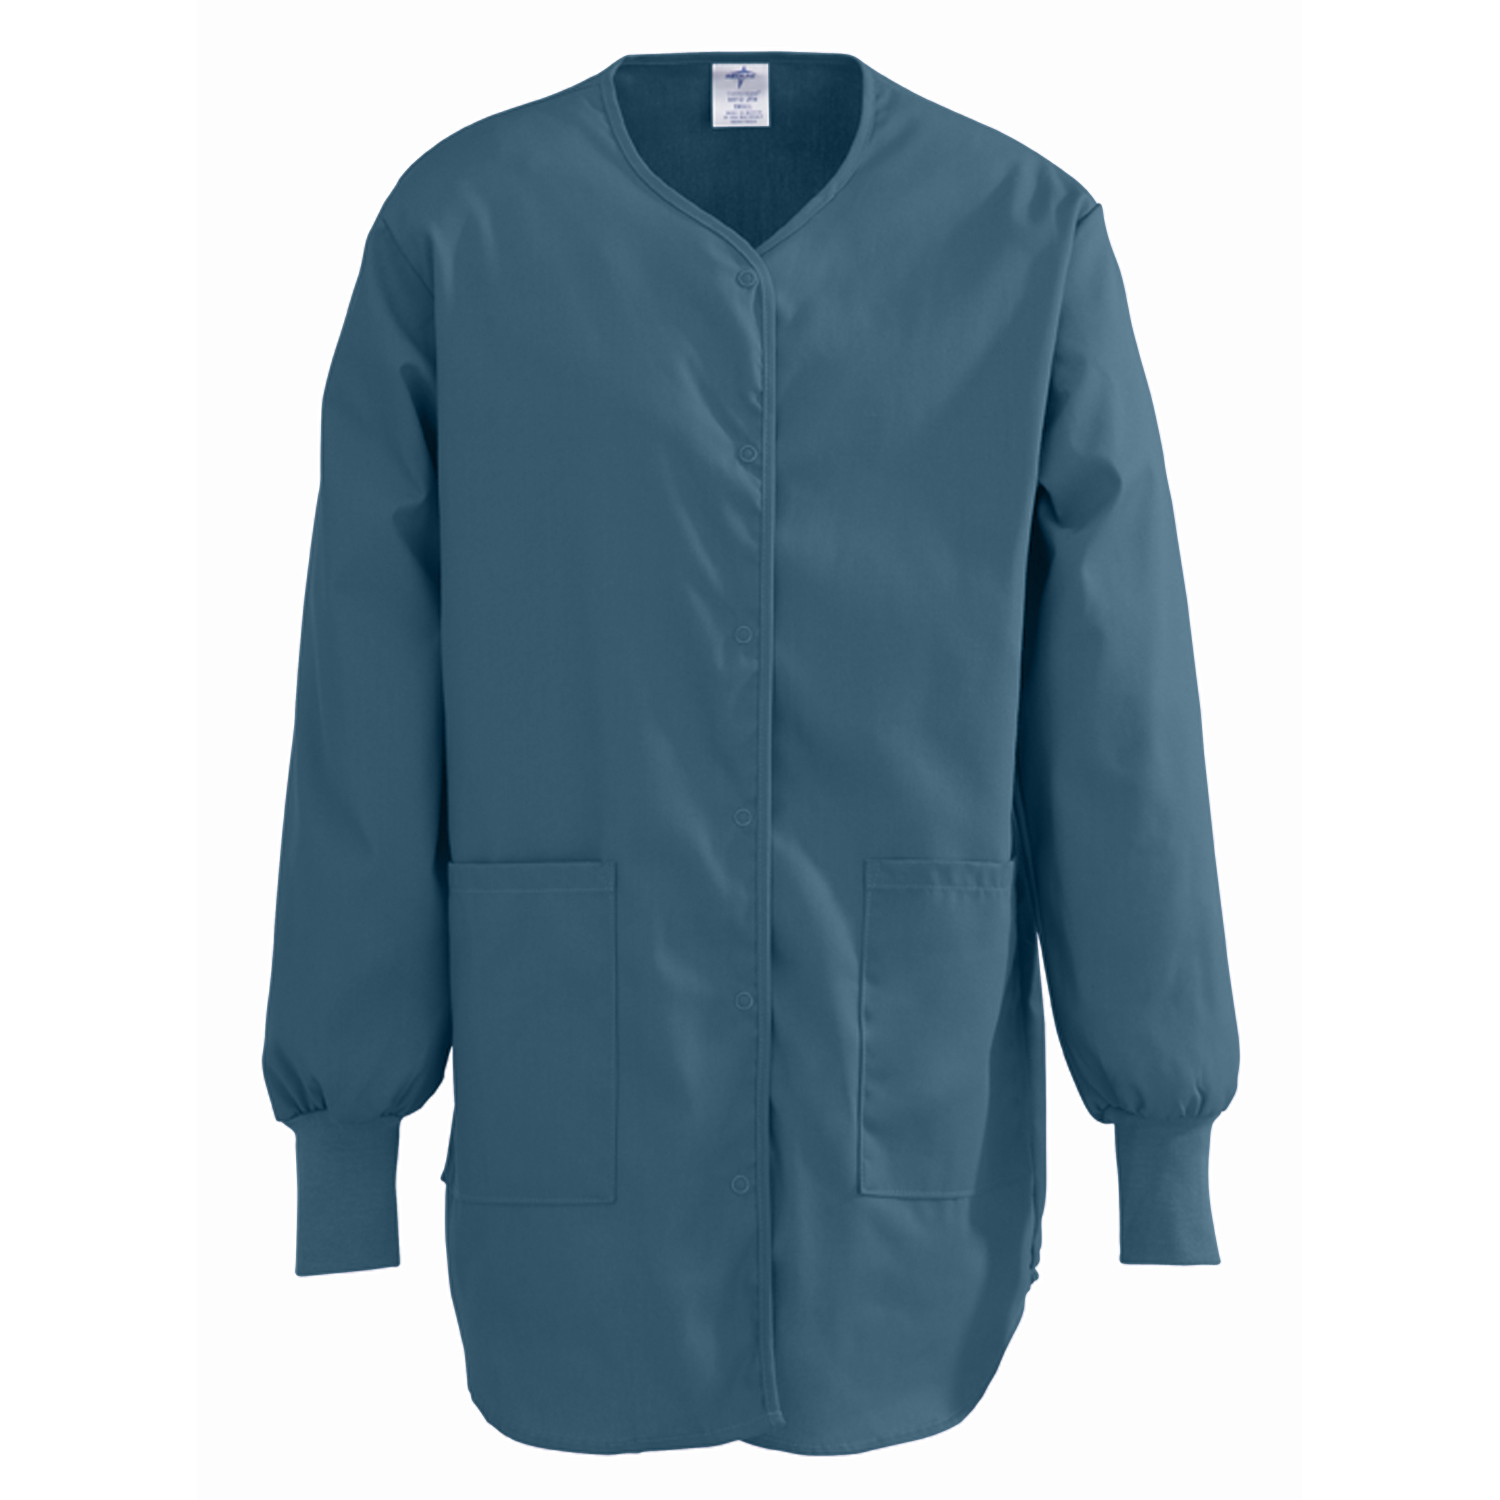 8812 Comfort Ease Shirttail Style Warm-up Jacket-Medline